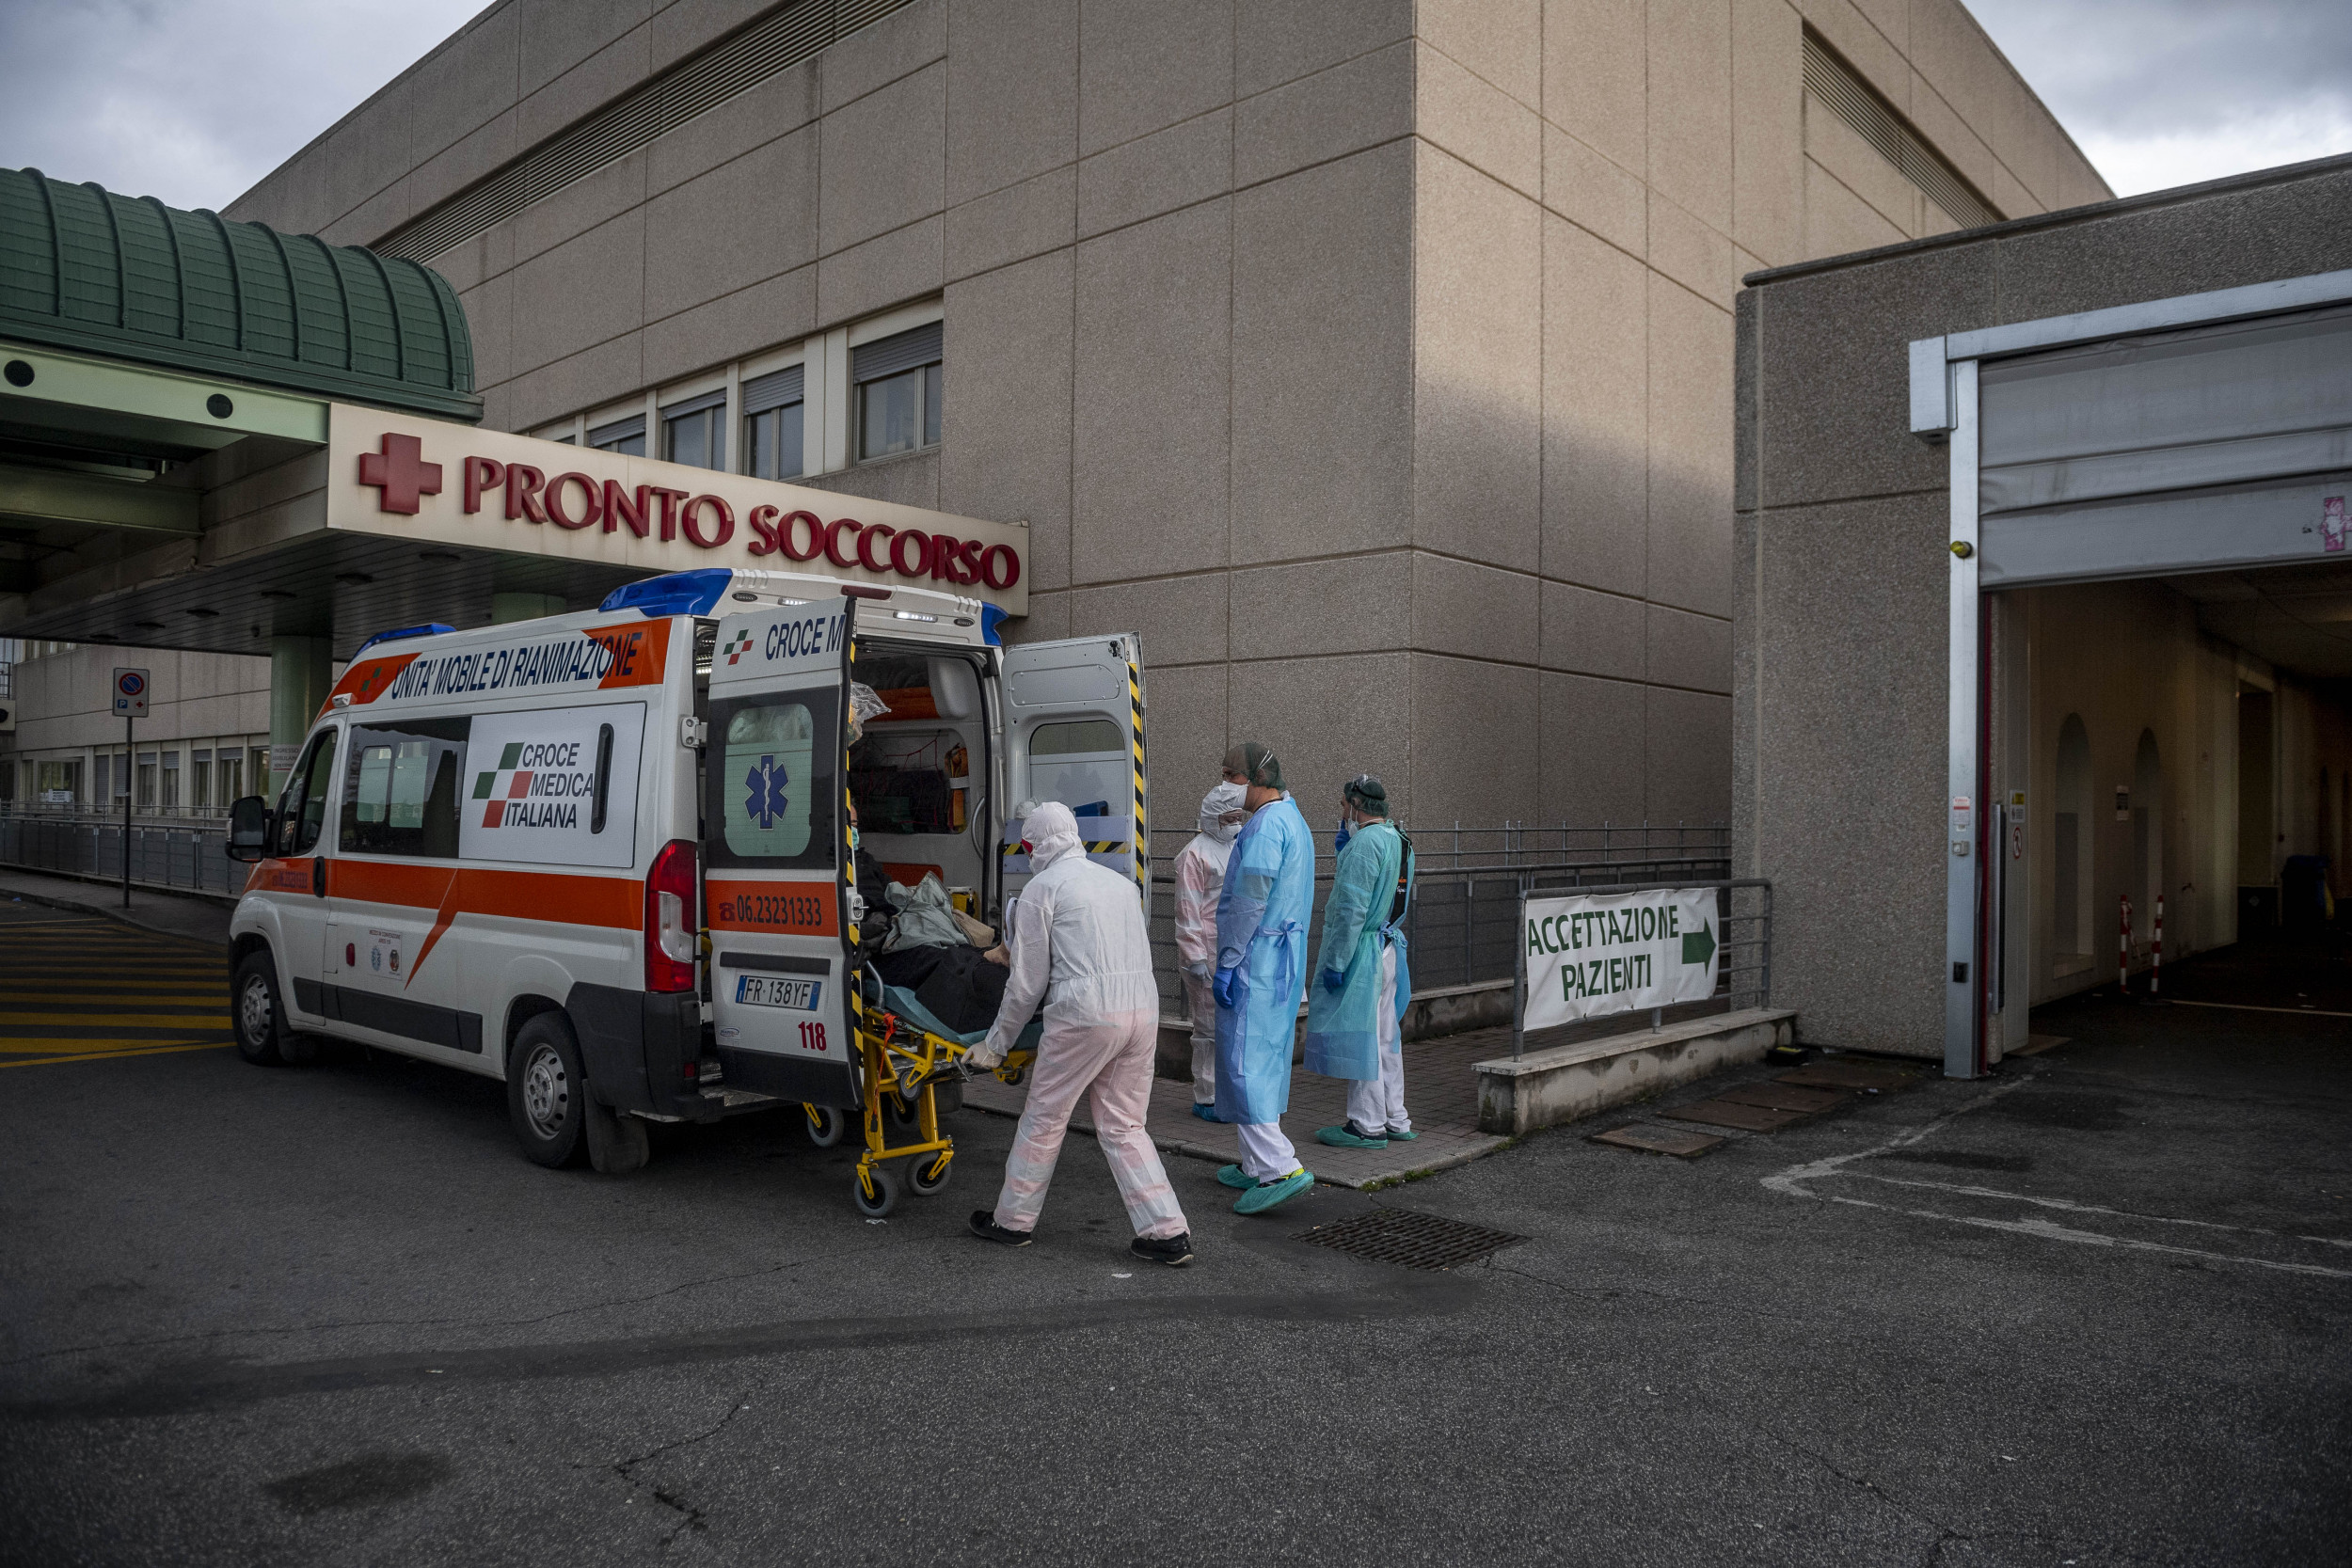 More Than 50 doctors in Italy have now died from coronavirus, with thousands of health care workers infected